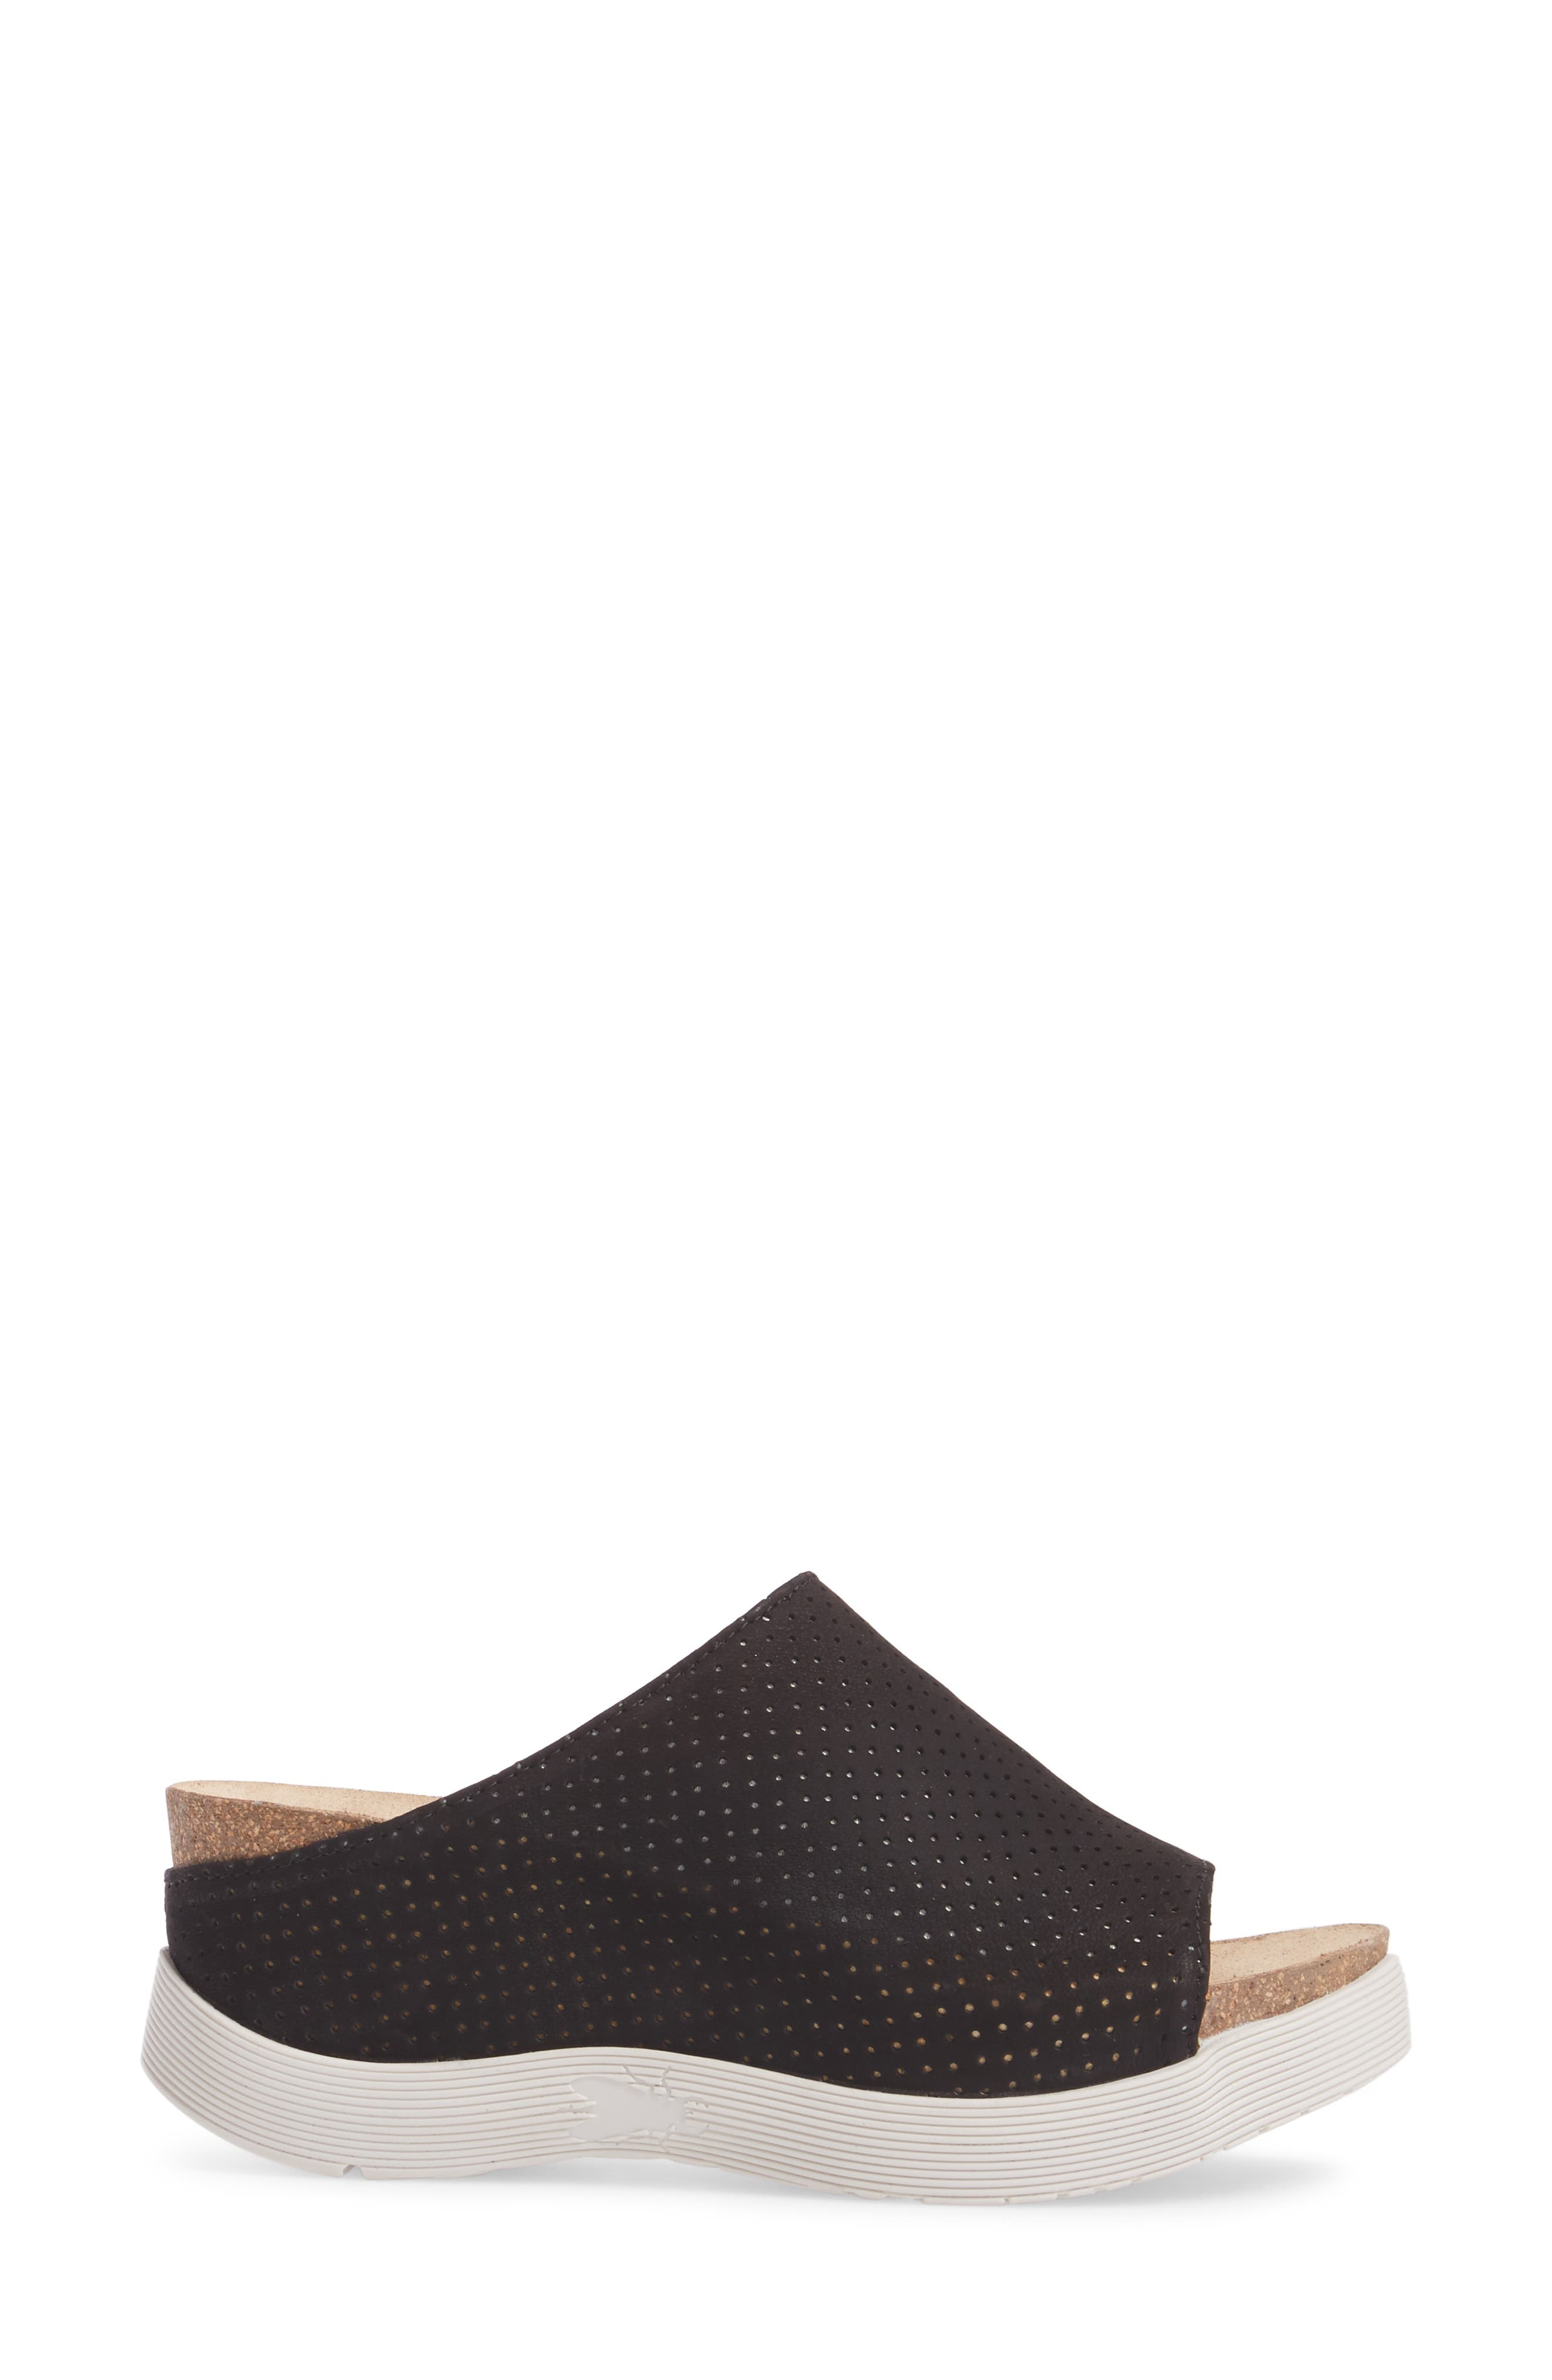 FLY LONDON, Whin Platform Sandal, Alternate thumbnail 3, color, BLACK CUPIDO LEATHER